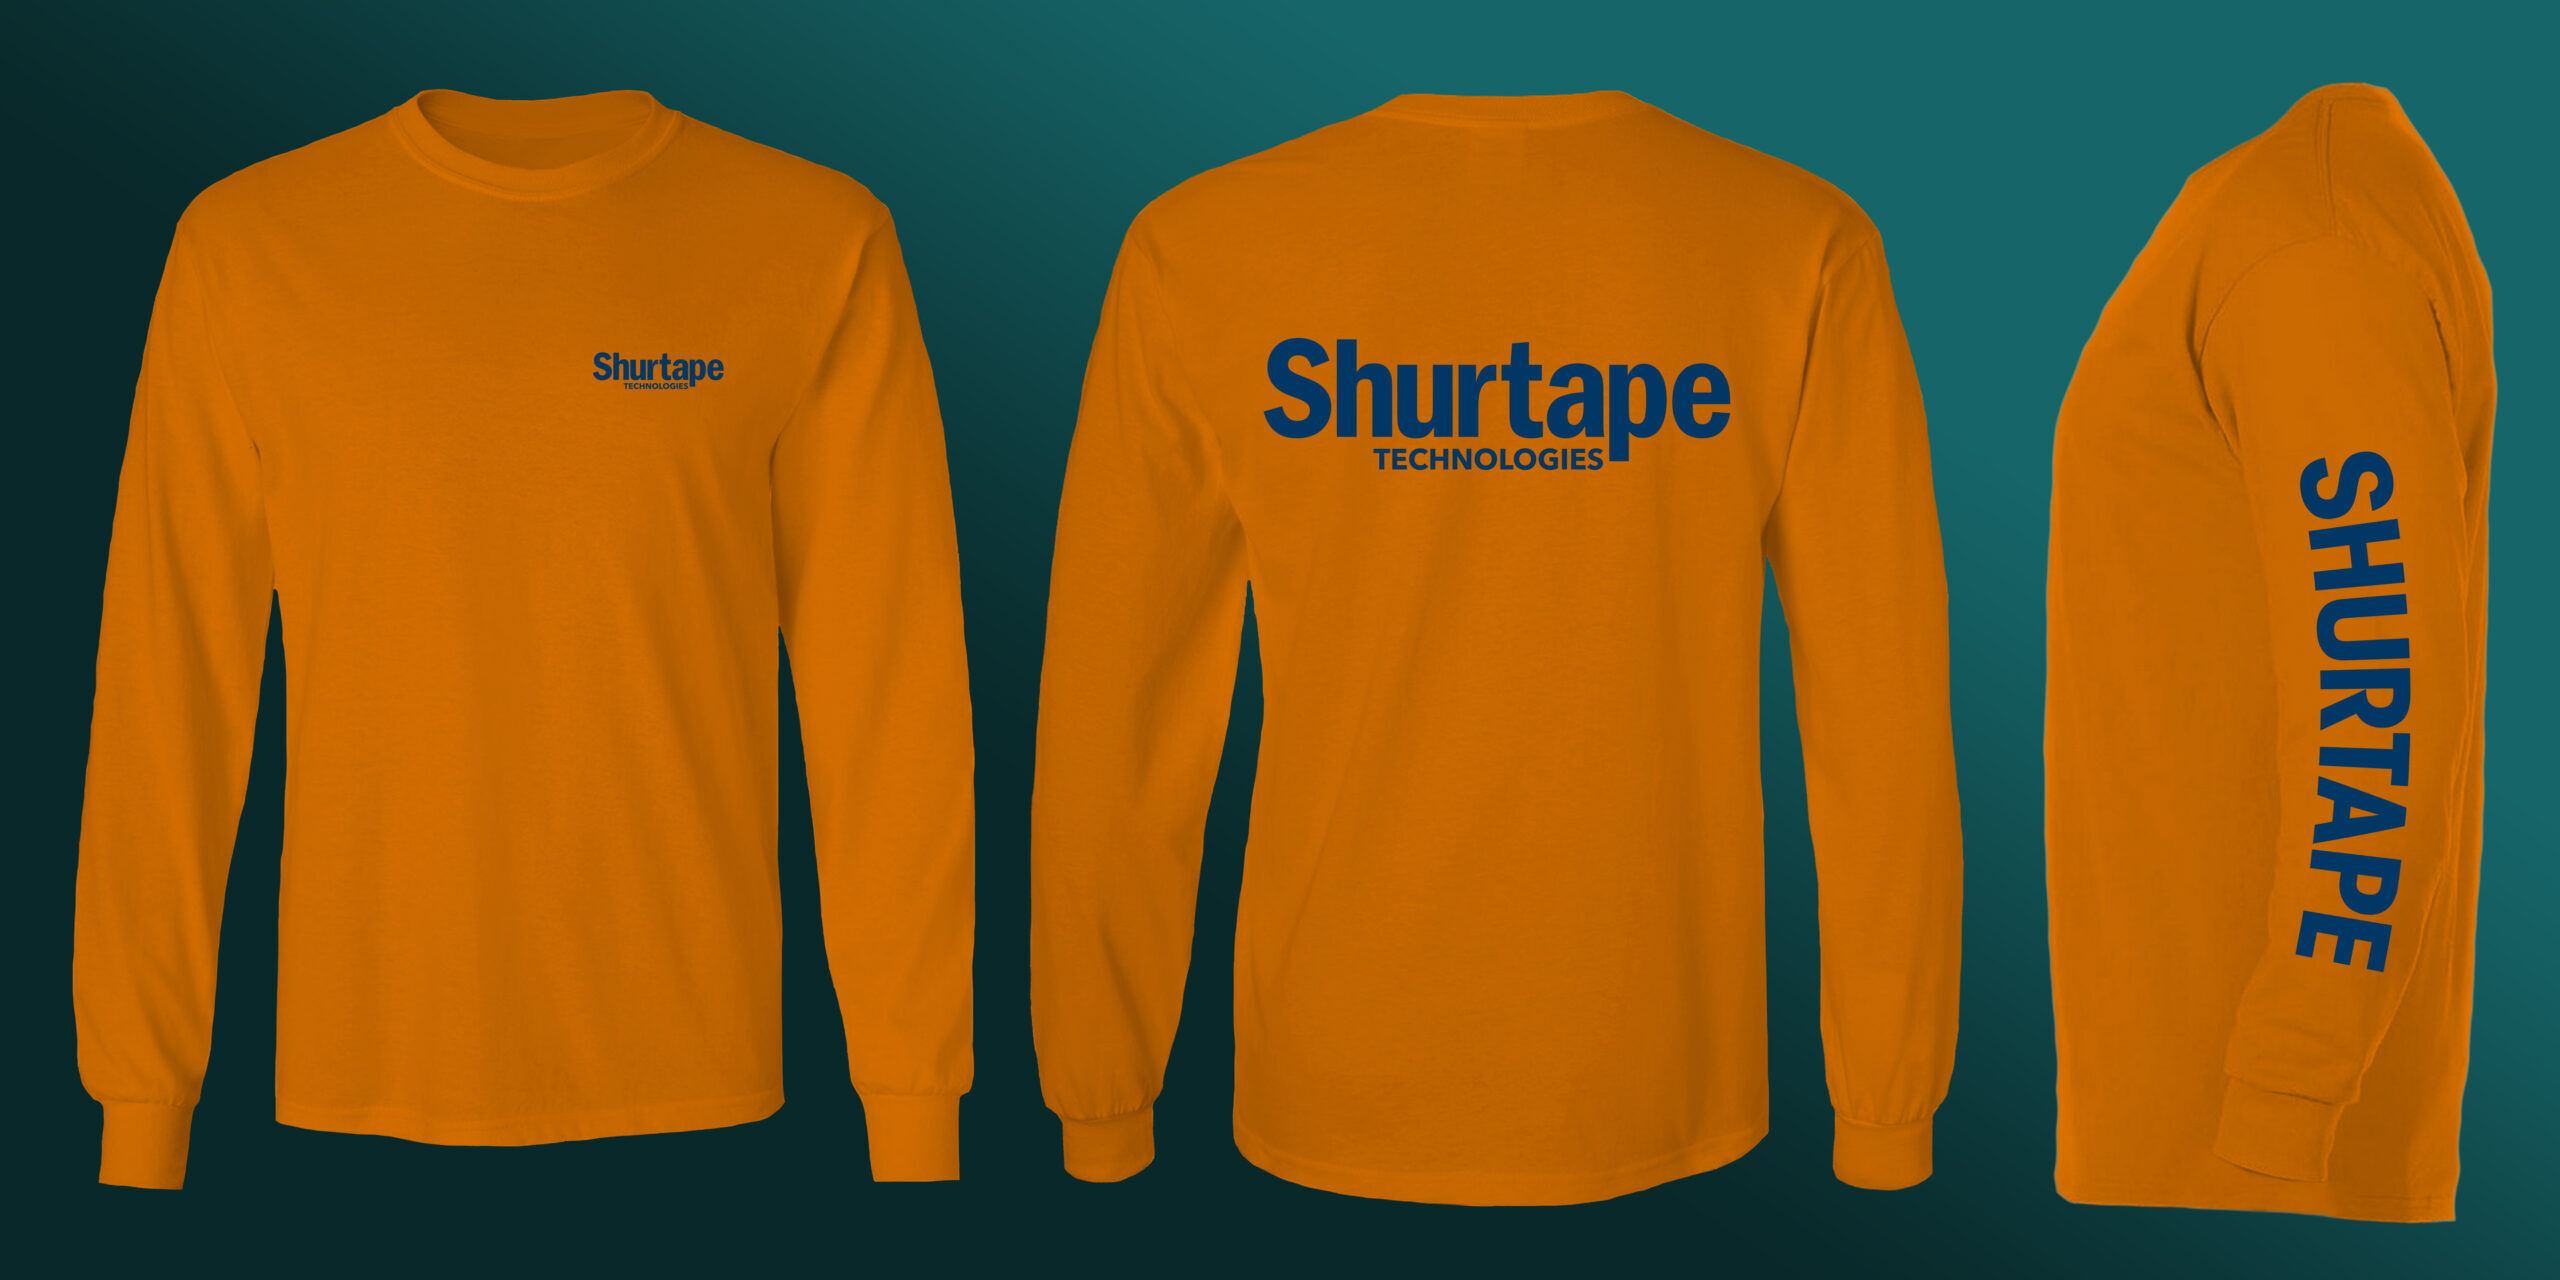 Shurtape Technologies Long Sleeved Tshirt